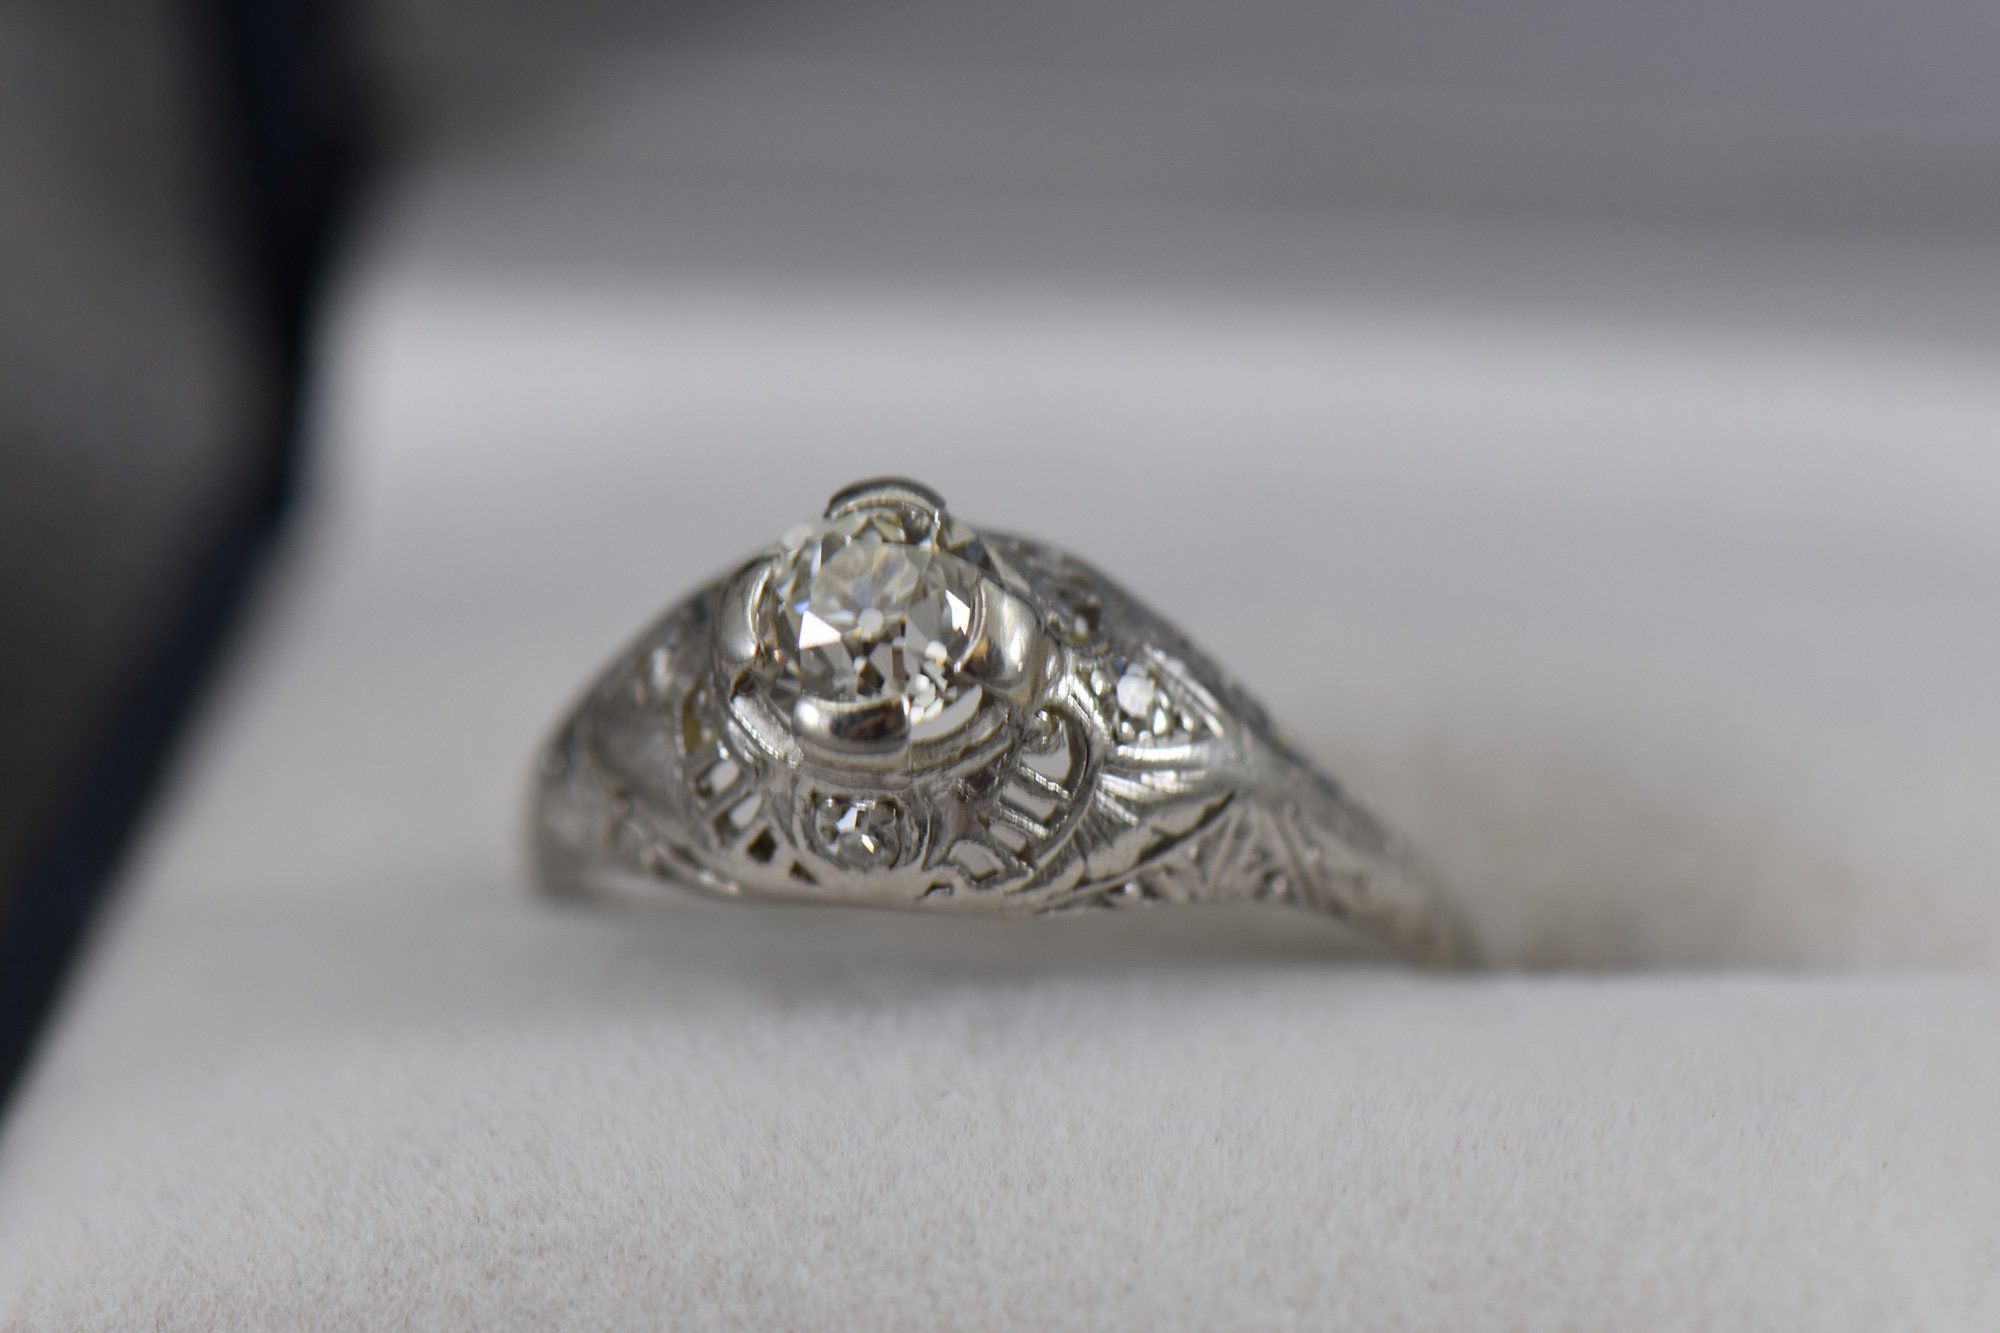 Art Nouveau 65ct Diamond Engagement Ring Federal Way Custom Jewelers